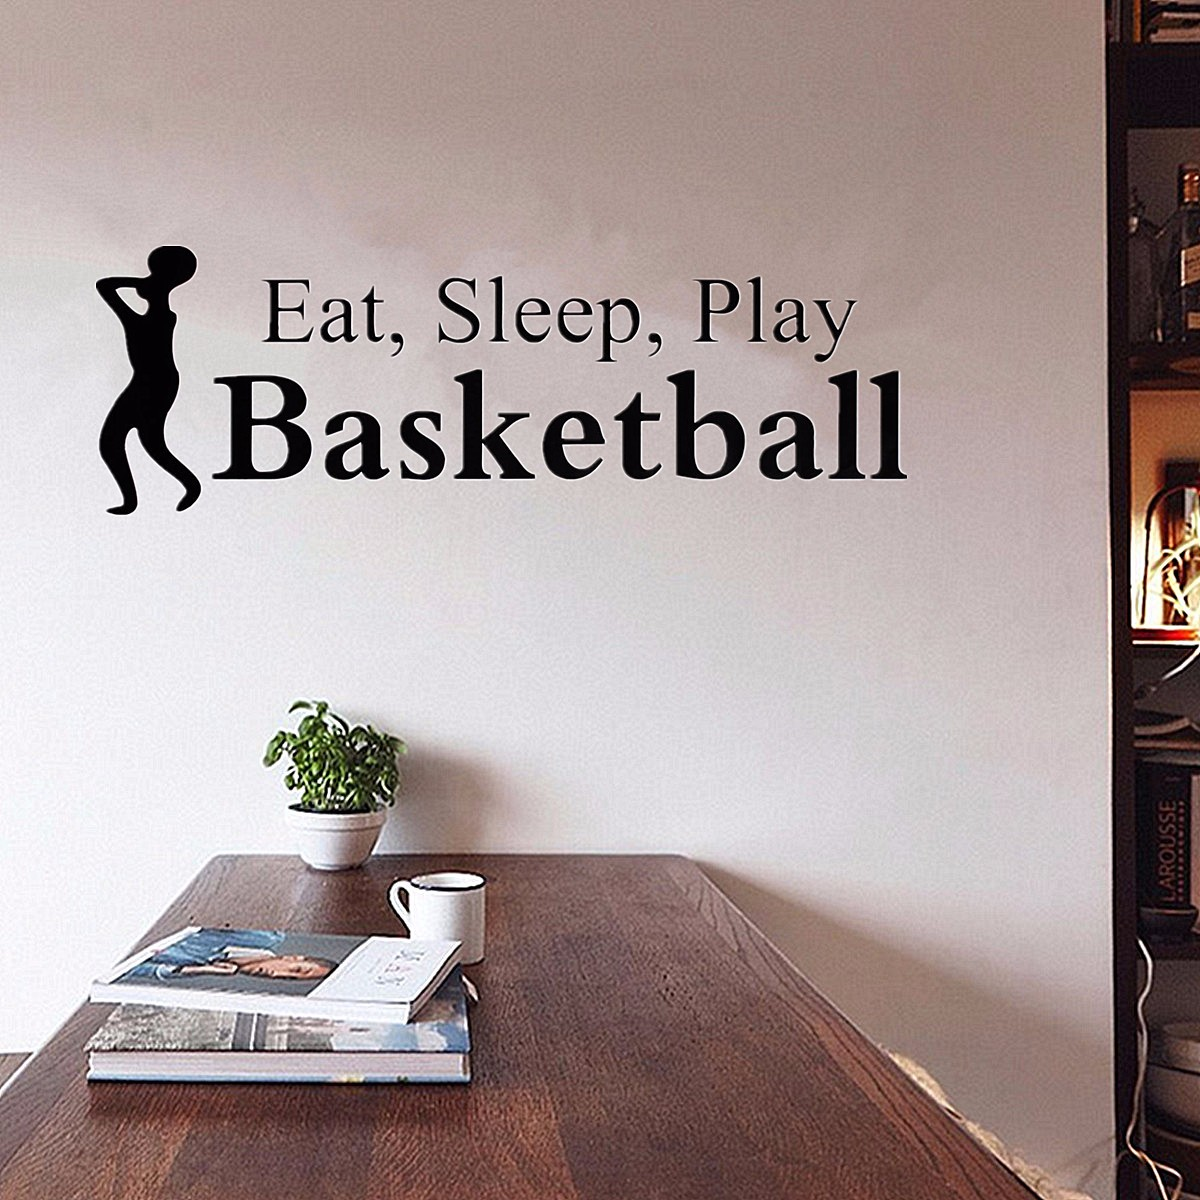 Bedroom Home Decor Eating Sleep Game Basketball Wall Stickers Mural PVC Stickers Beautiful Art Deco Wall Stickers